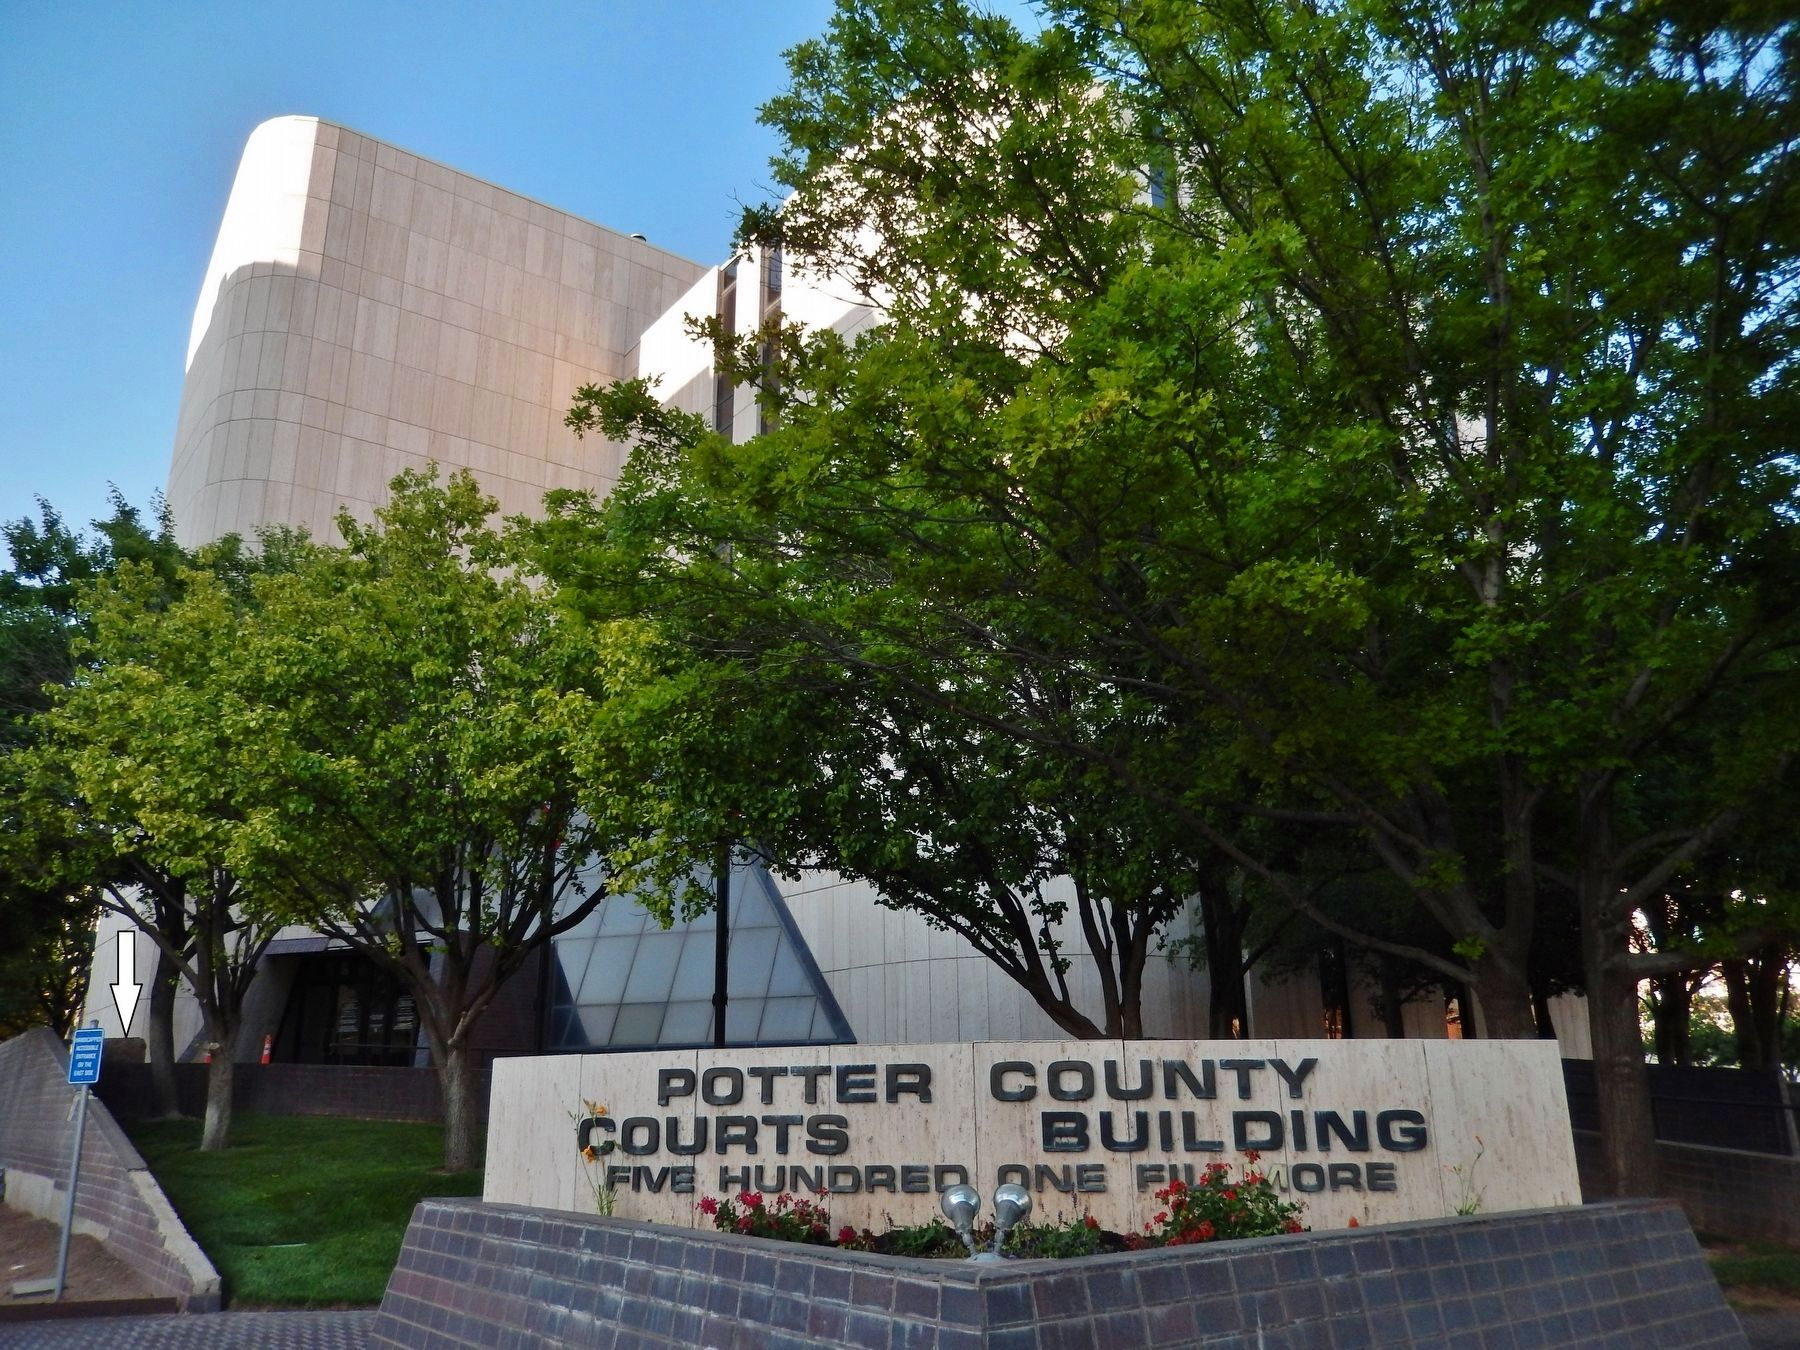 Potter County Courts Building Plaza (<i>marker visible near courthouse entrance - left edge</i>) image. Click for full size.